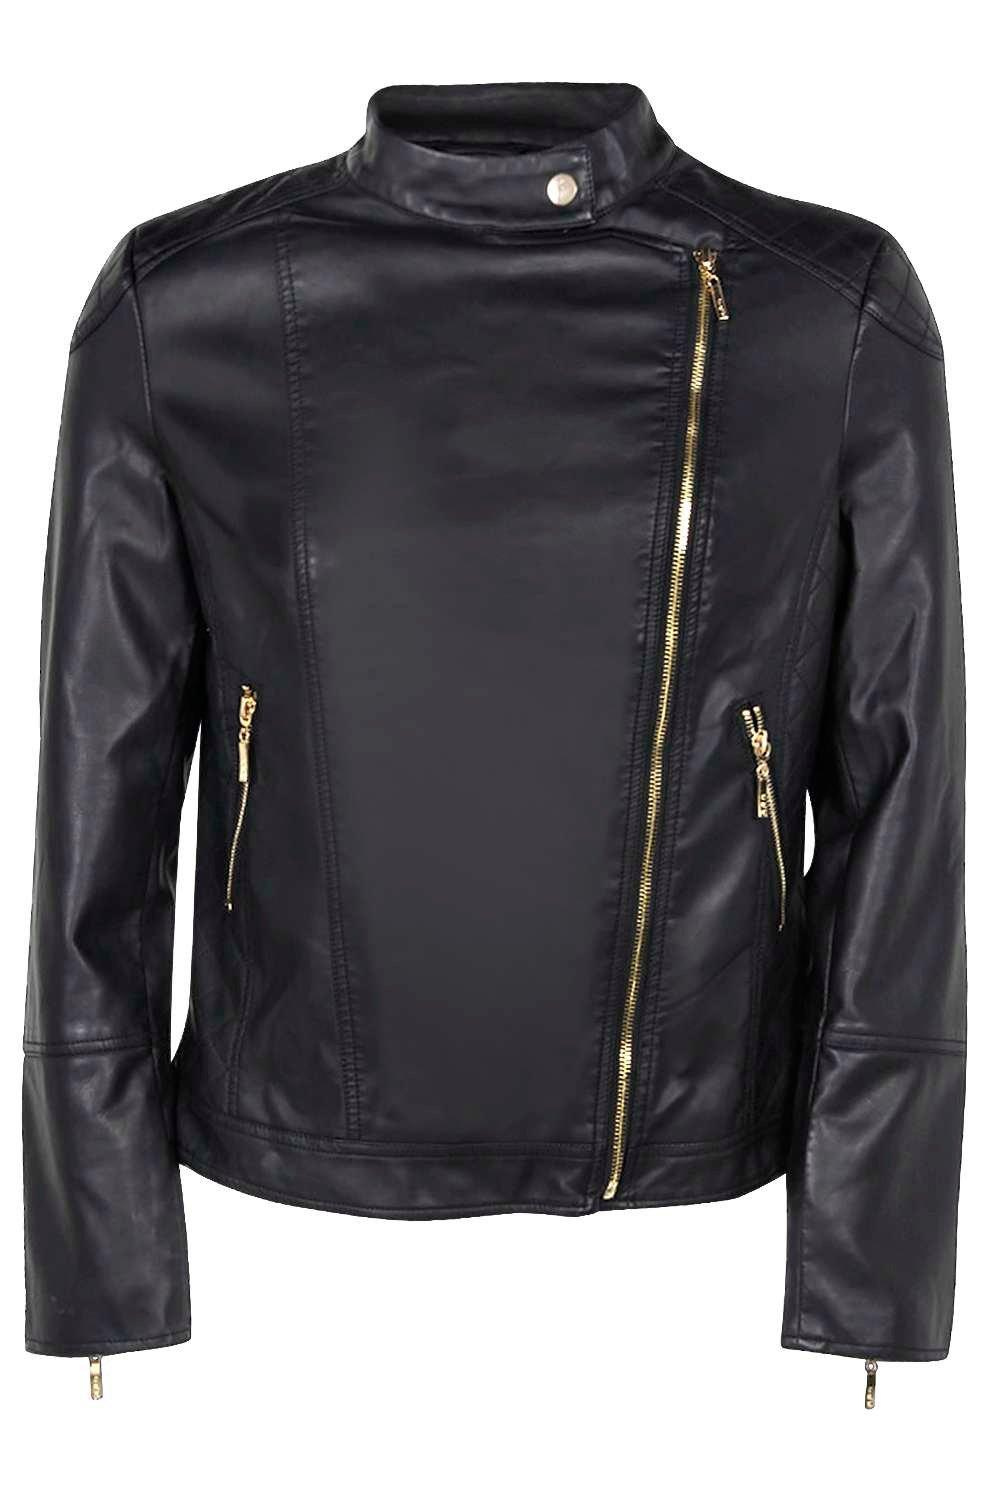 Boohoo Womens Eliza Quilted Faux Leather Biker Jacket